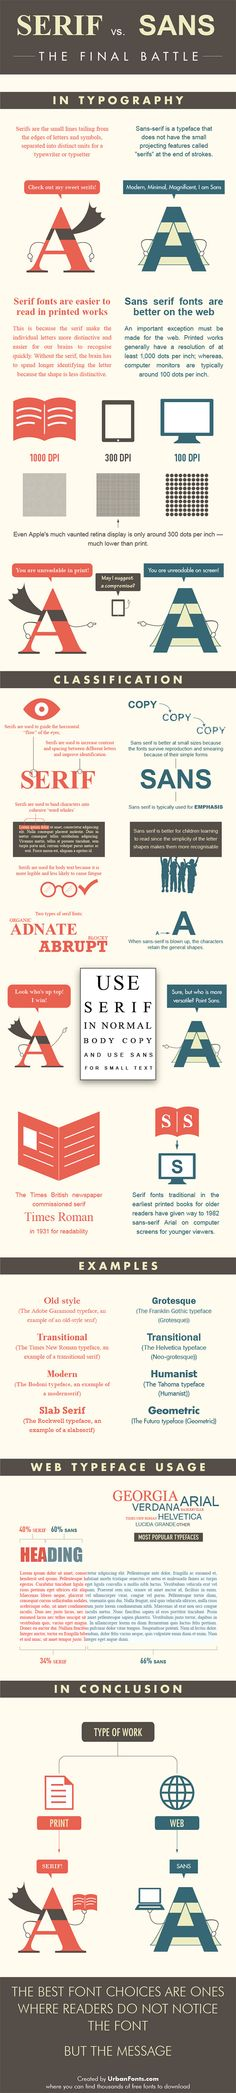 22 Architectural Fonts - Download Free Fonts Similar To Architect's Handwriting